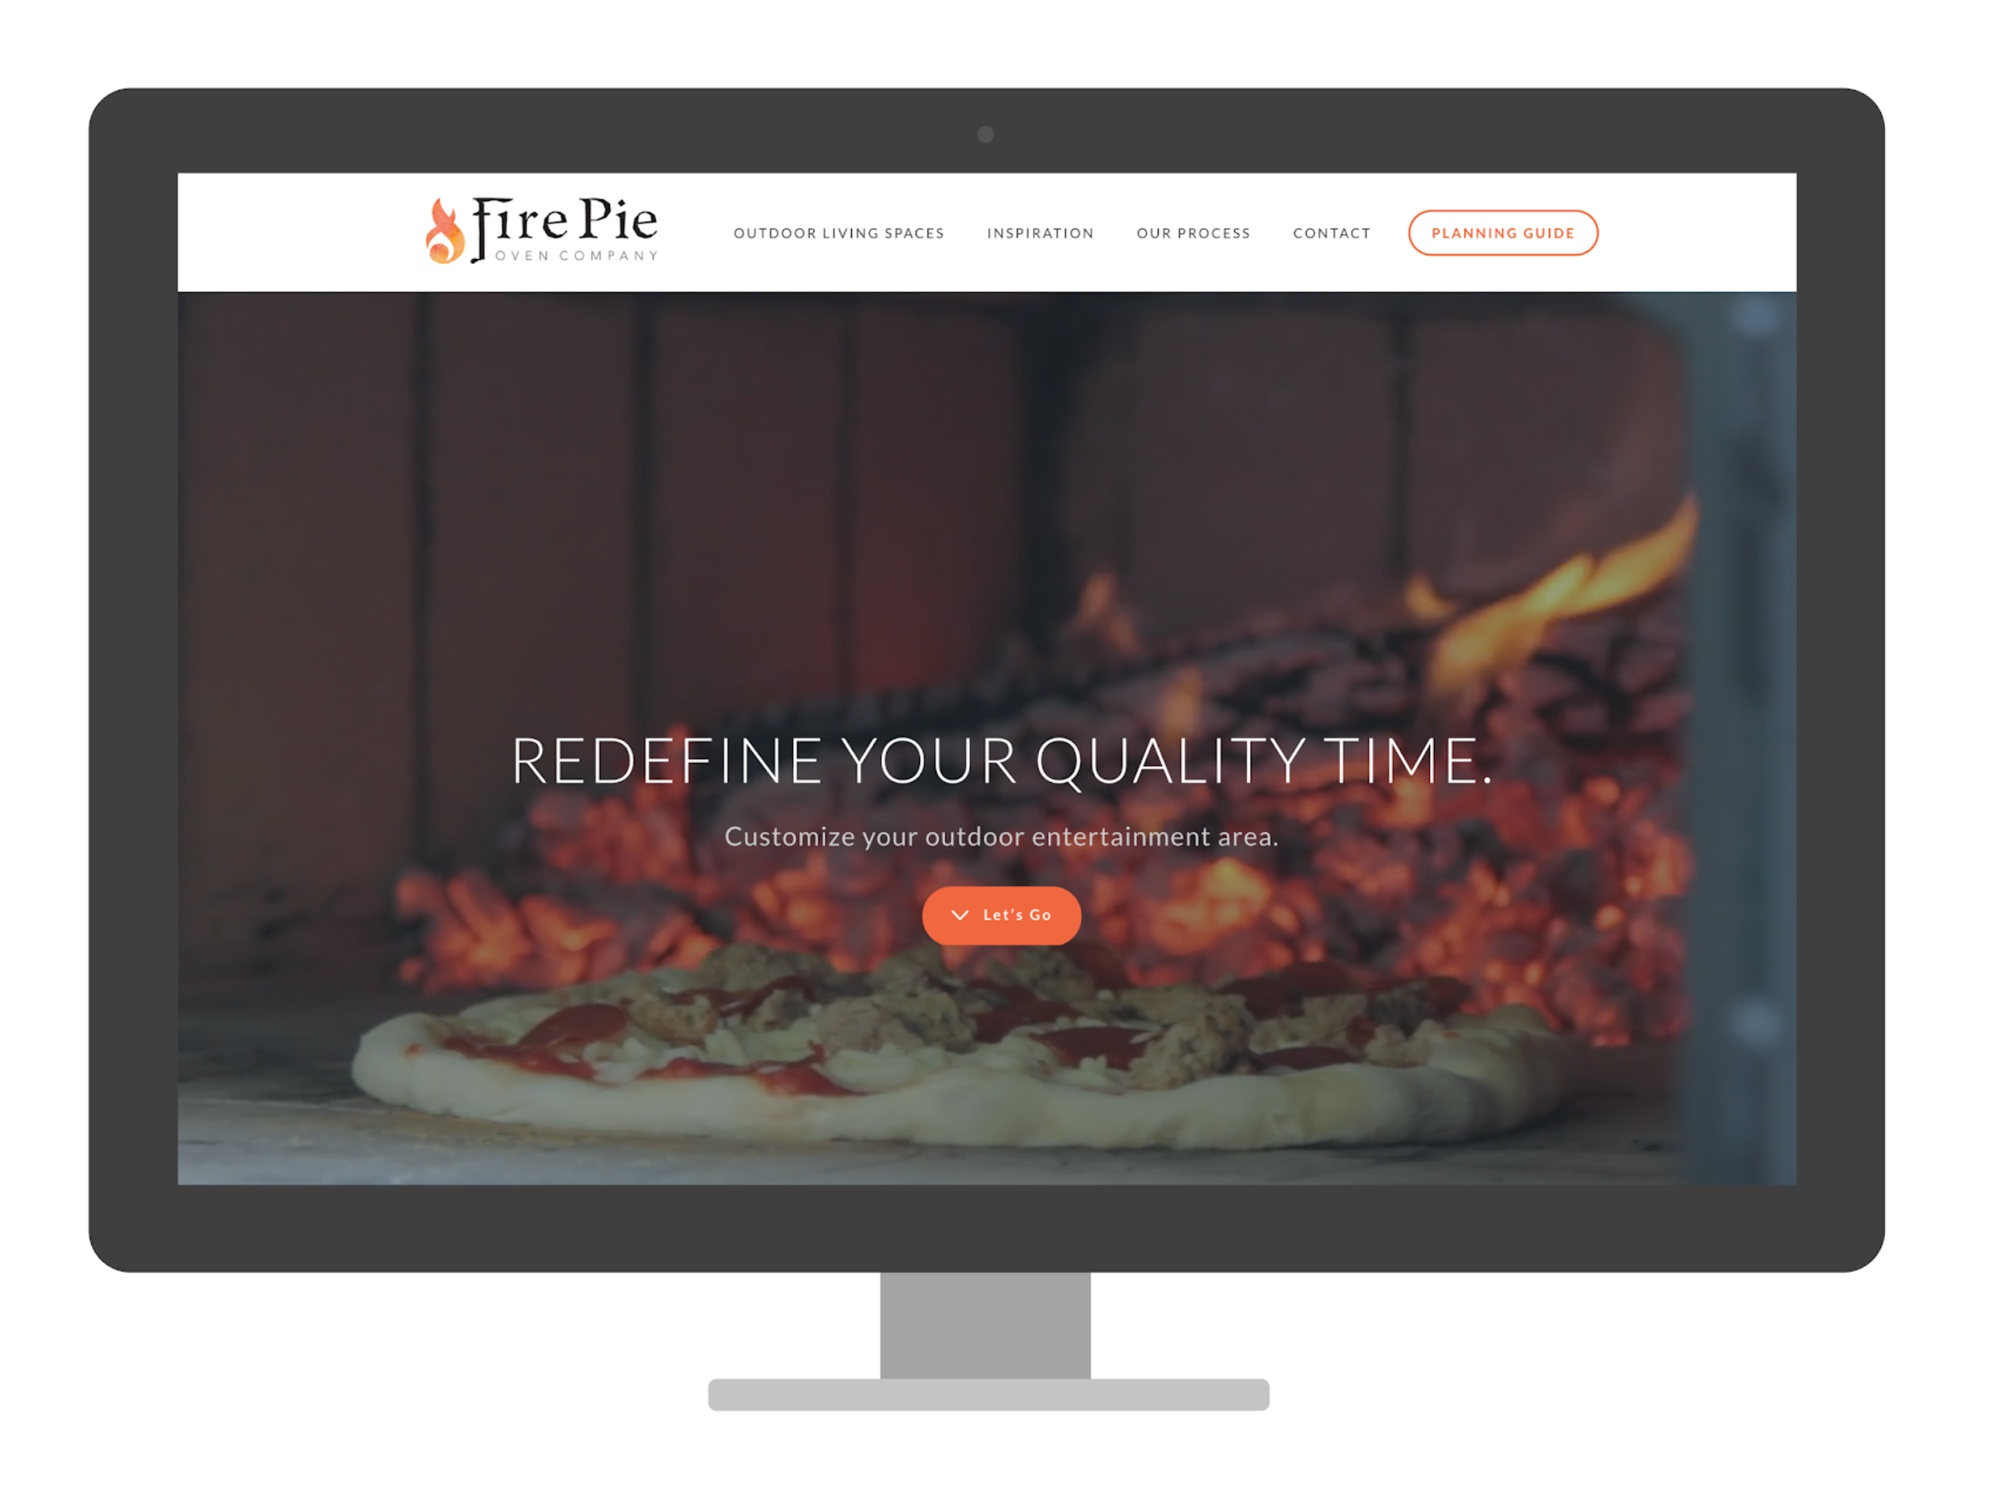 A screenshot of the homepage of firepieovens.com